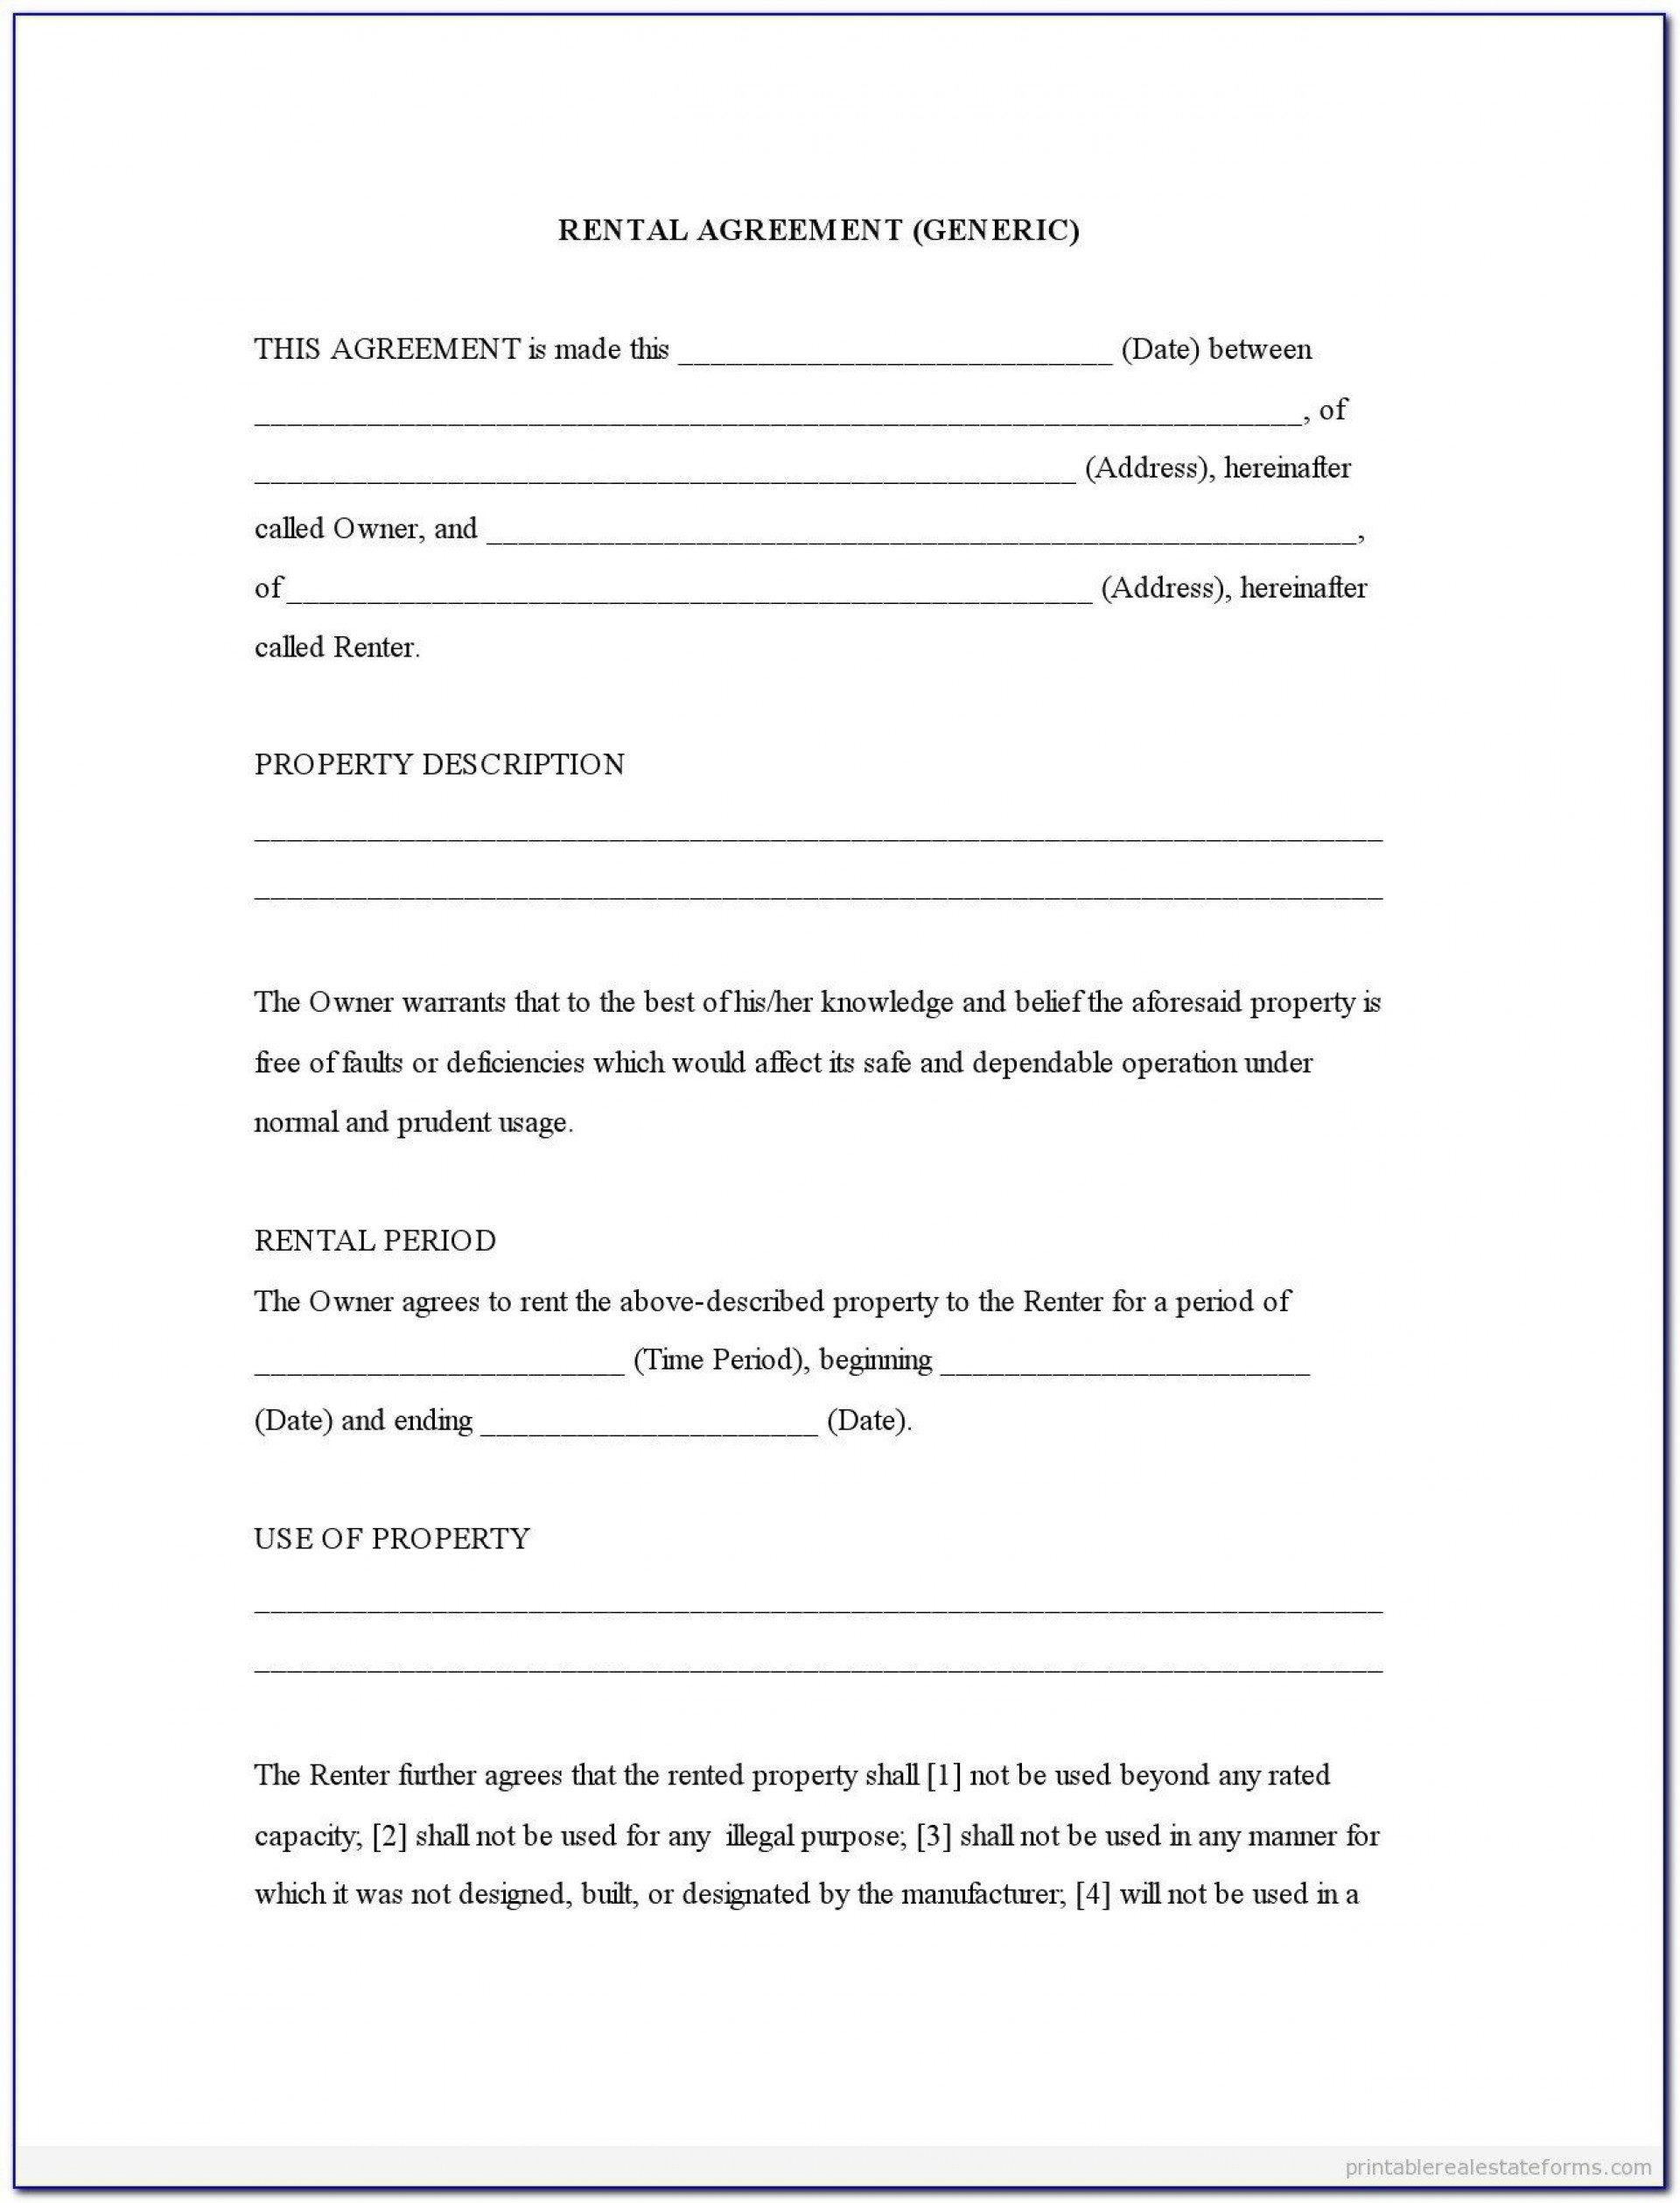 007 Remarkable Rental Agreement Template Word Canada Highest Clarity 1920